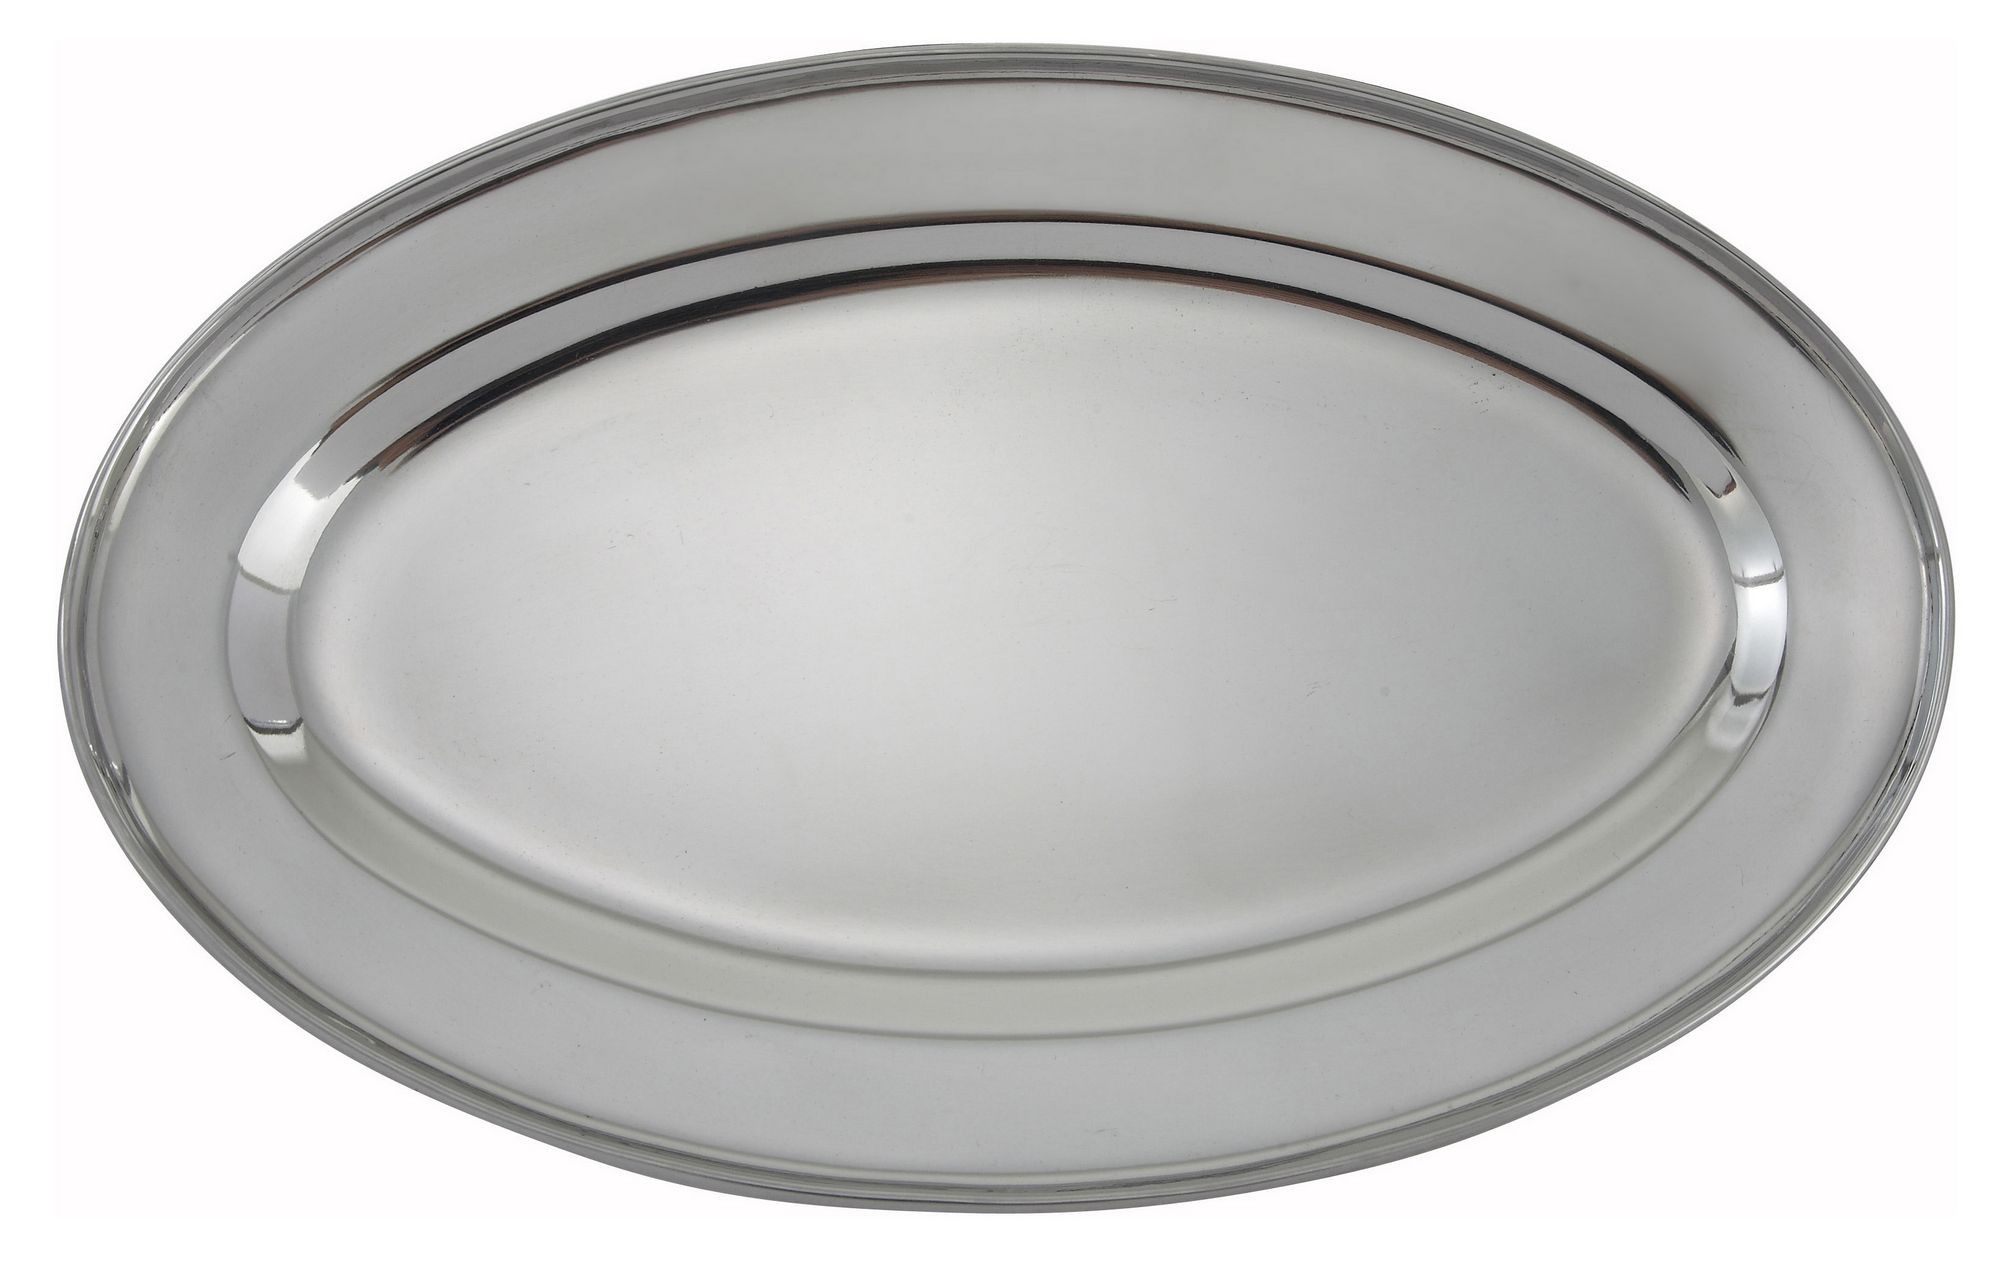 "Winco OPL-16 Stainless Steel Oval Platter, 16"" x 10-1/4"""